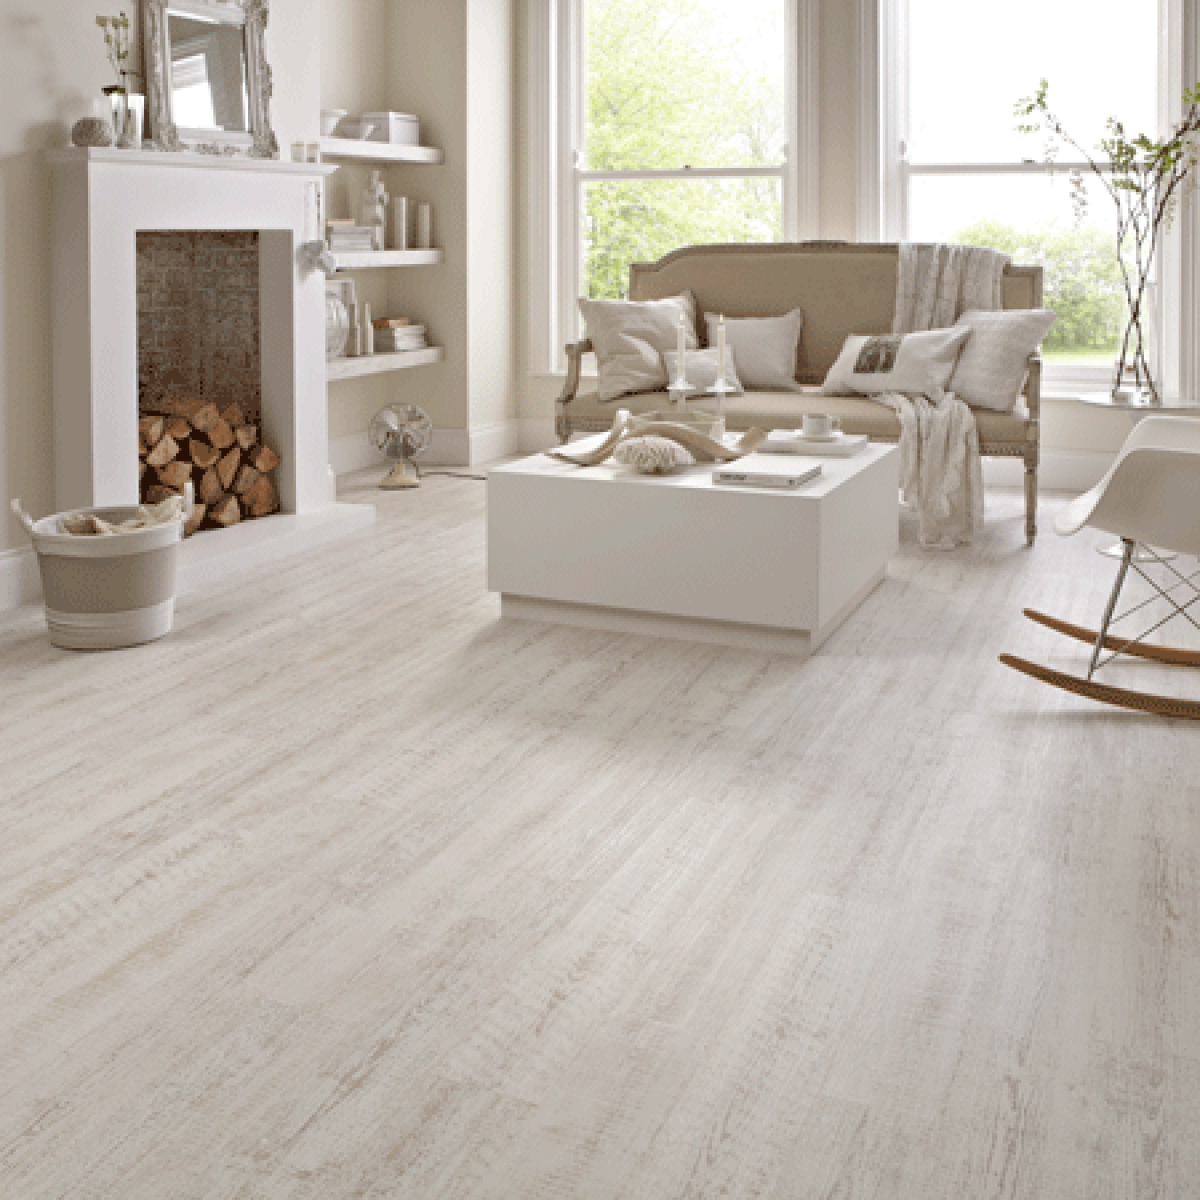 Karndean Knight Tile Kp105 White Painted Oak Vinyl